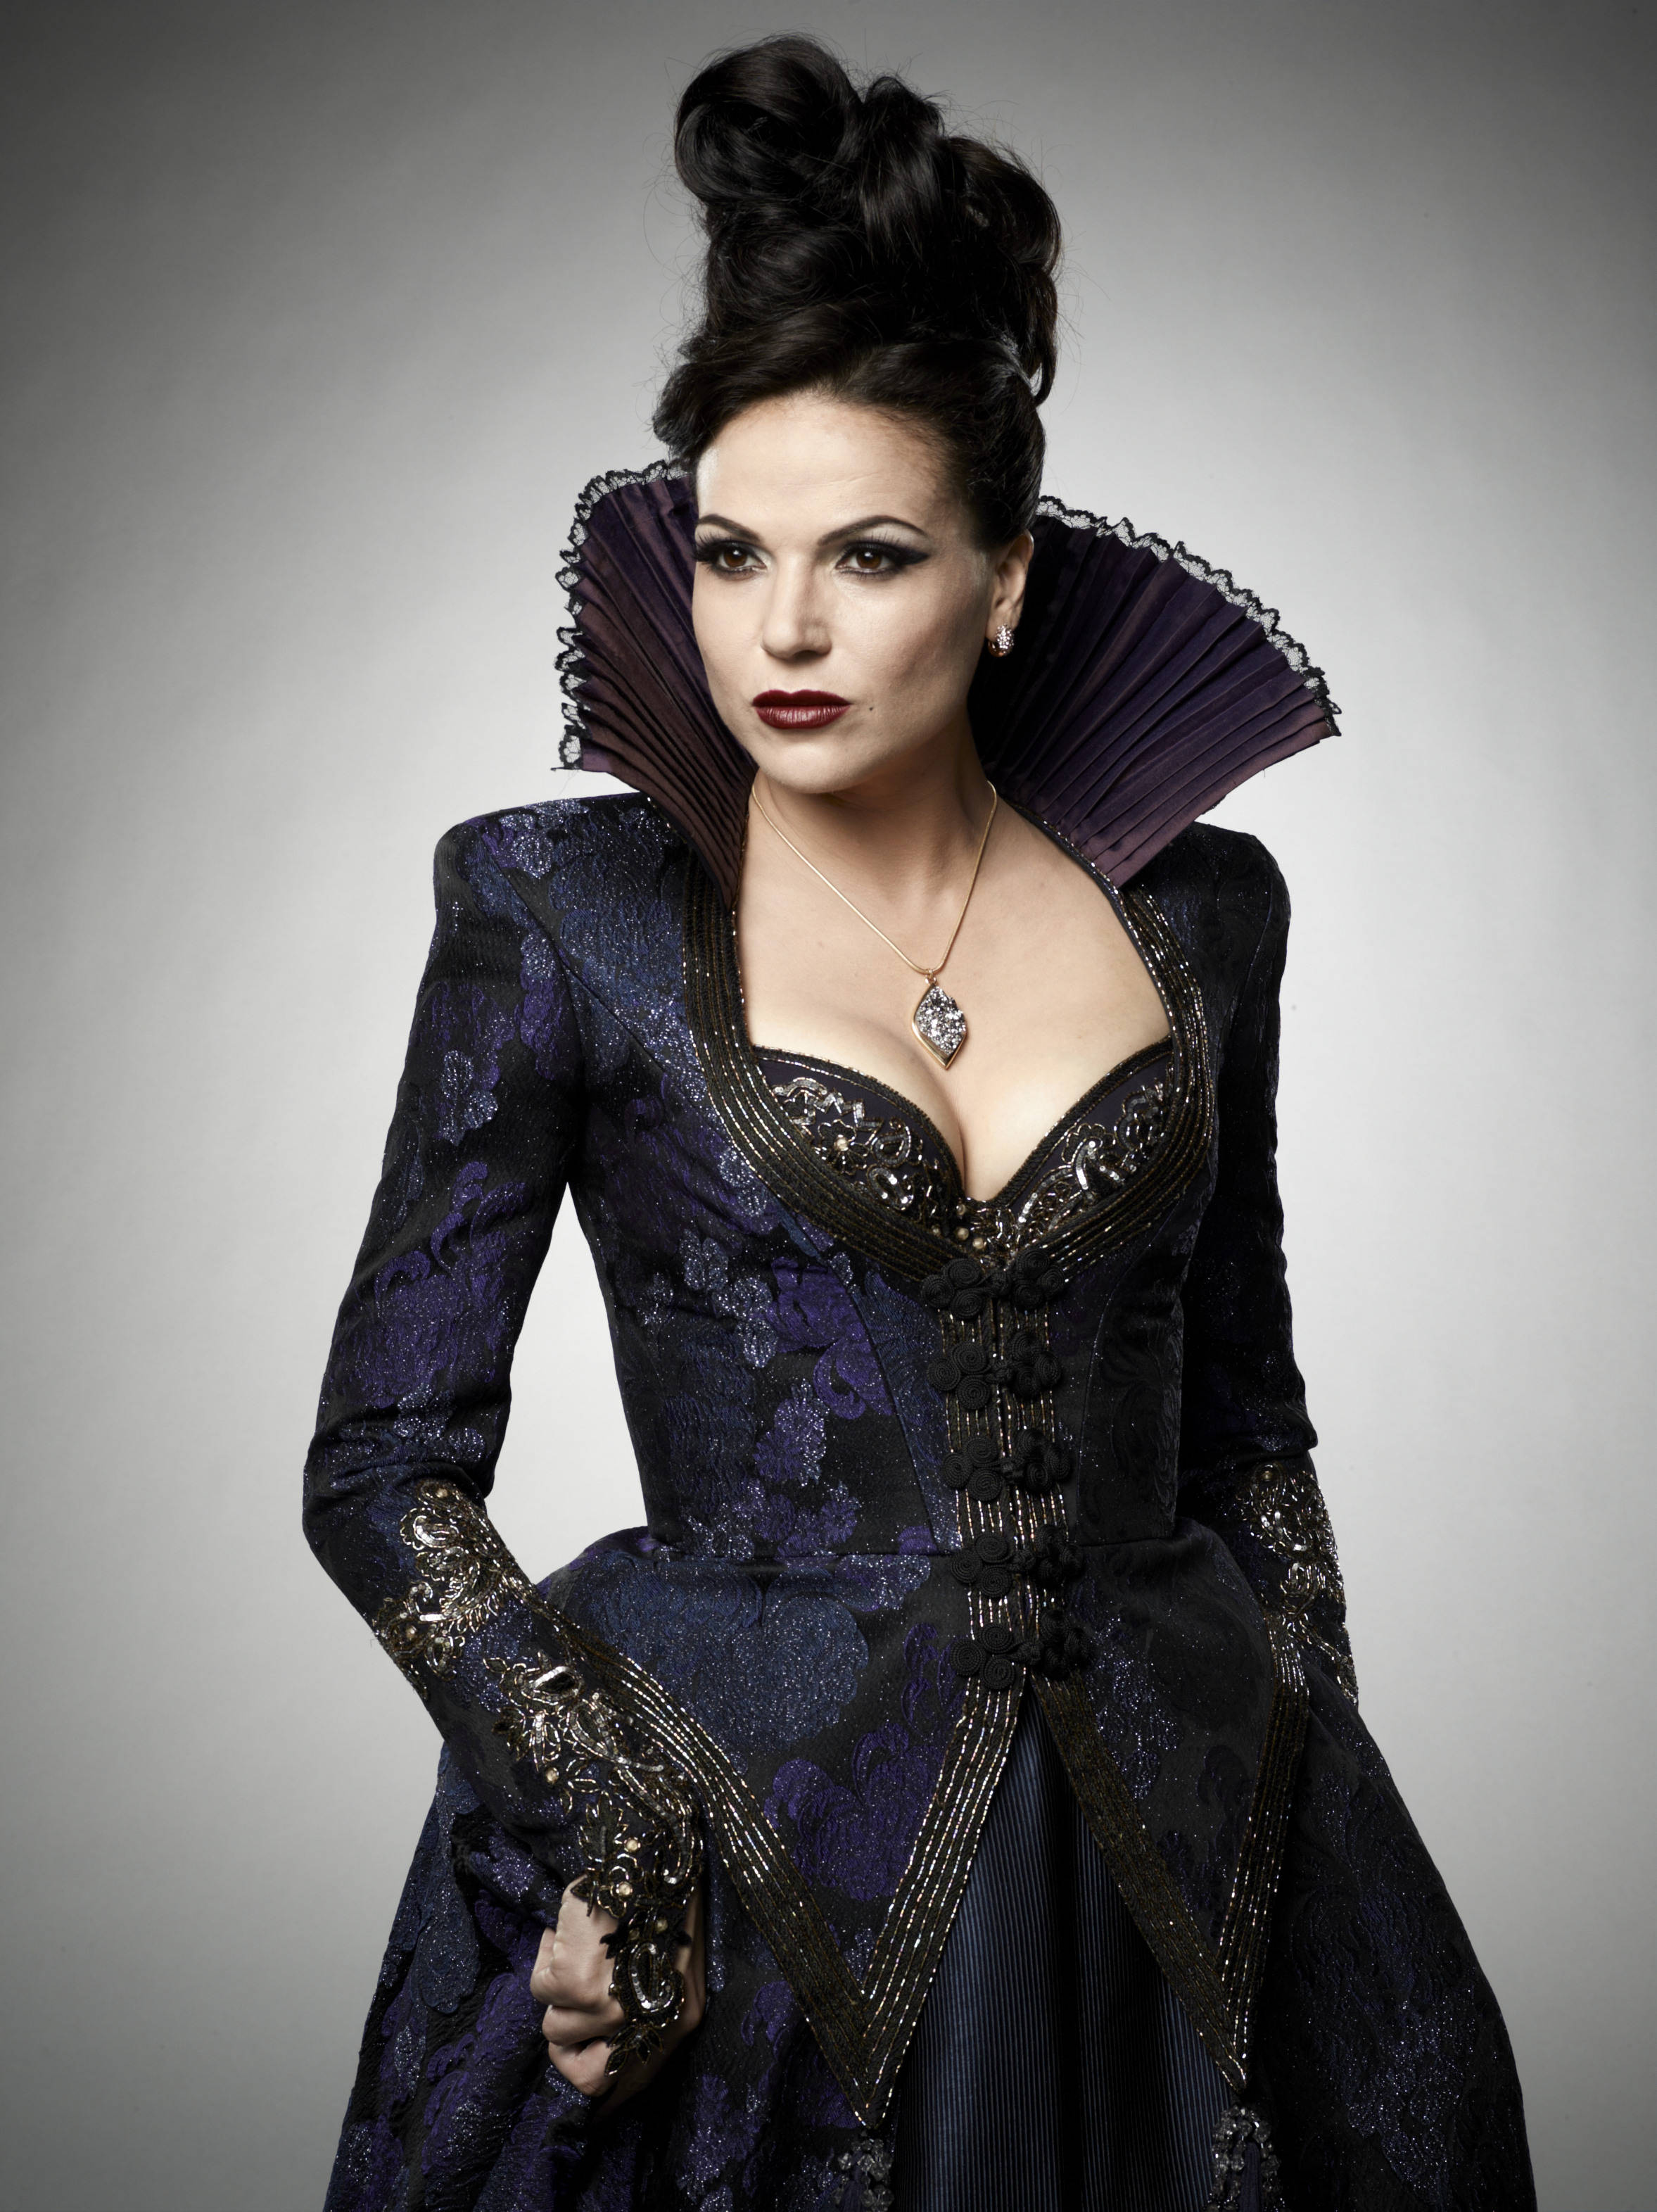 Lana Parrilla For mobile